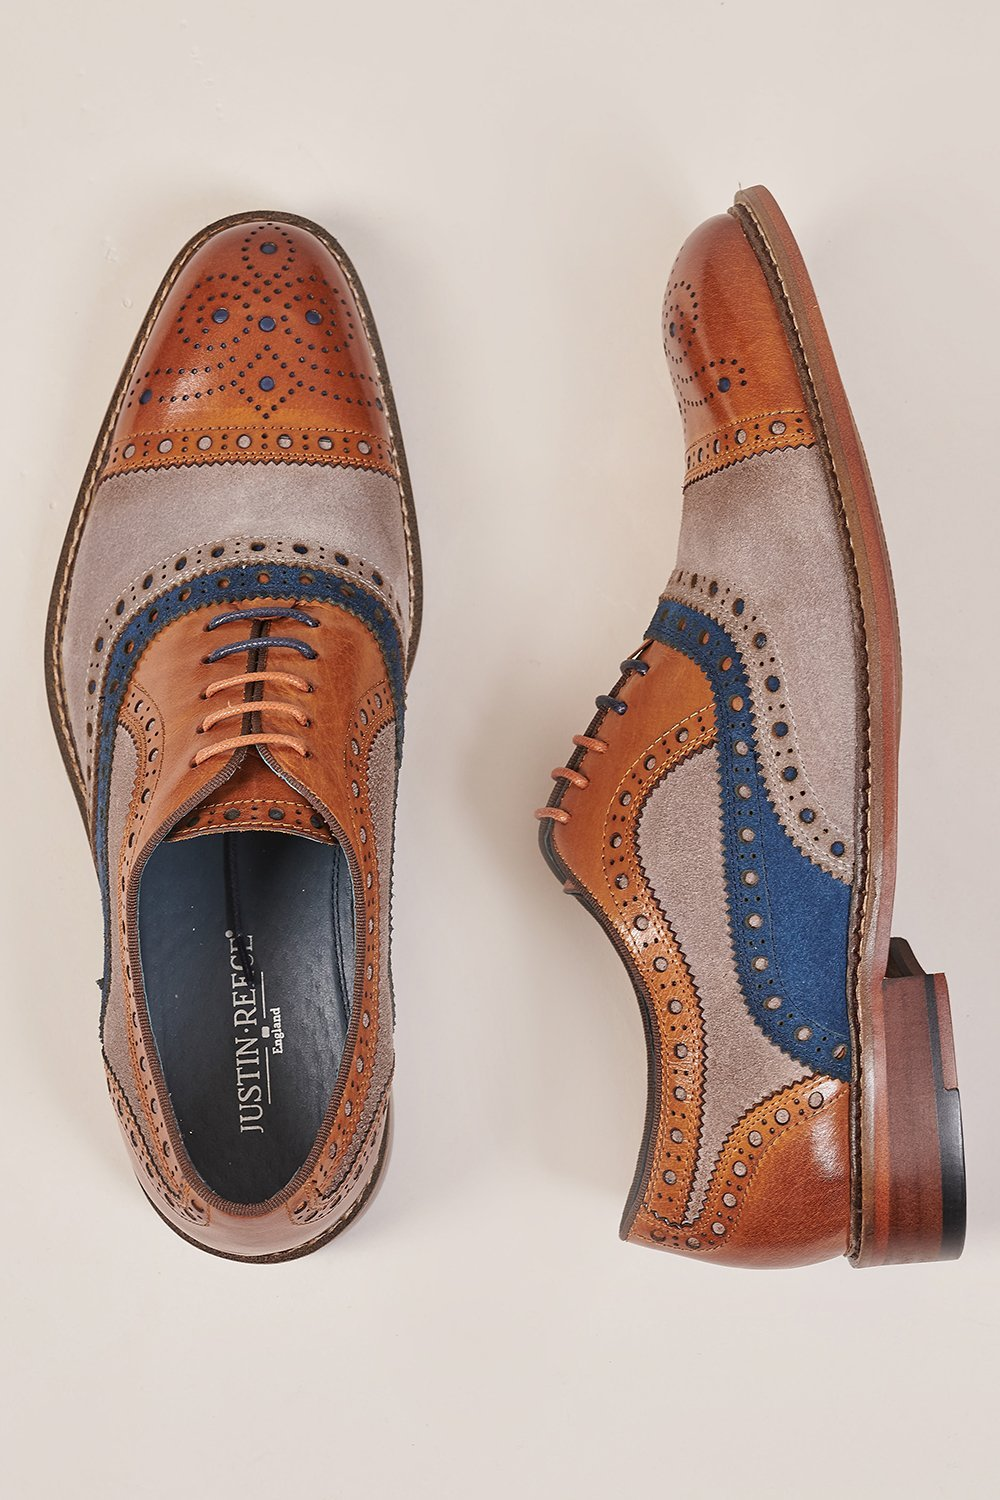 Justin Reece Justin Reece Brown Leather & Contrast Suede Brogue £69.00